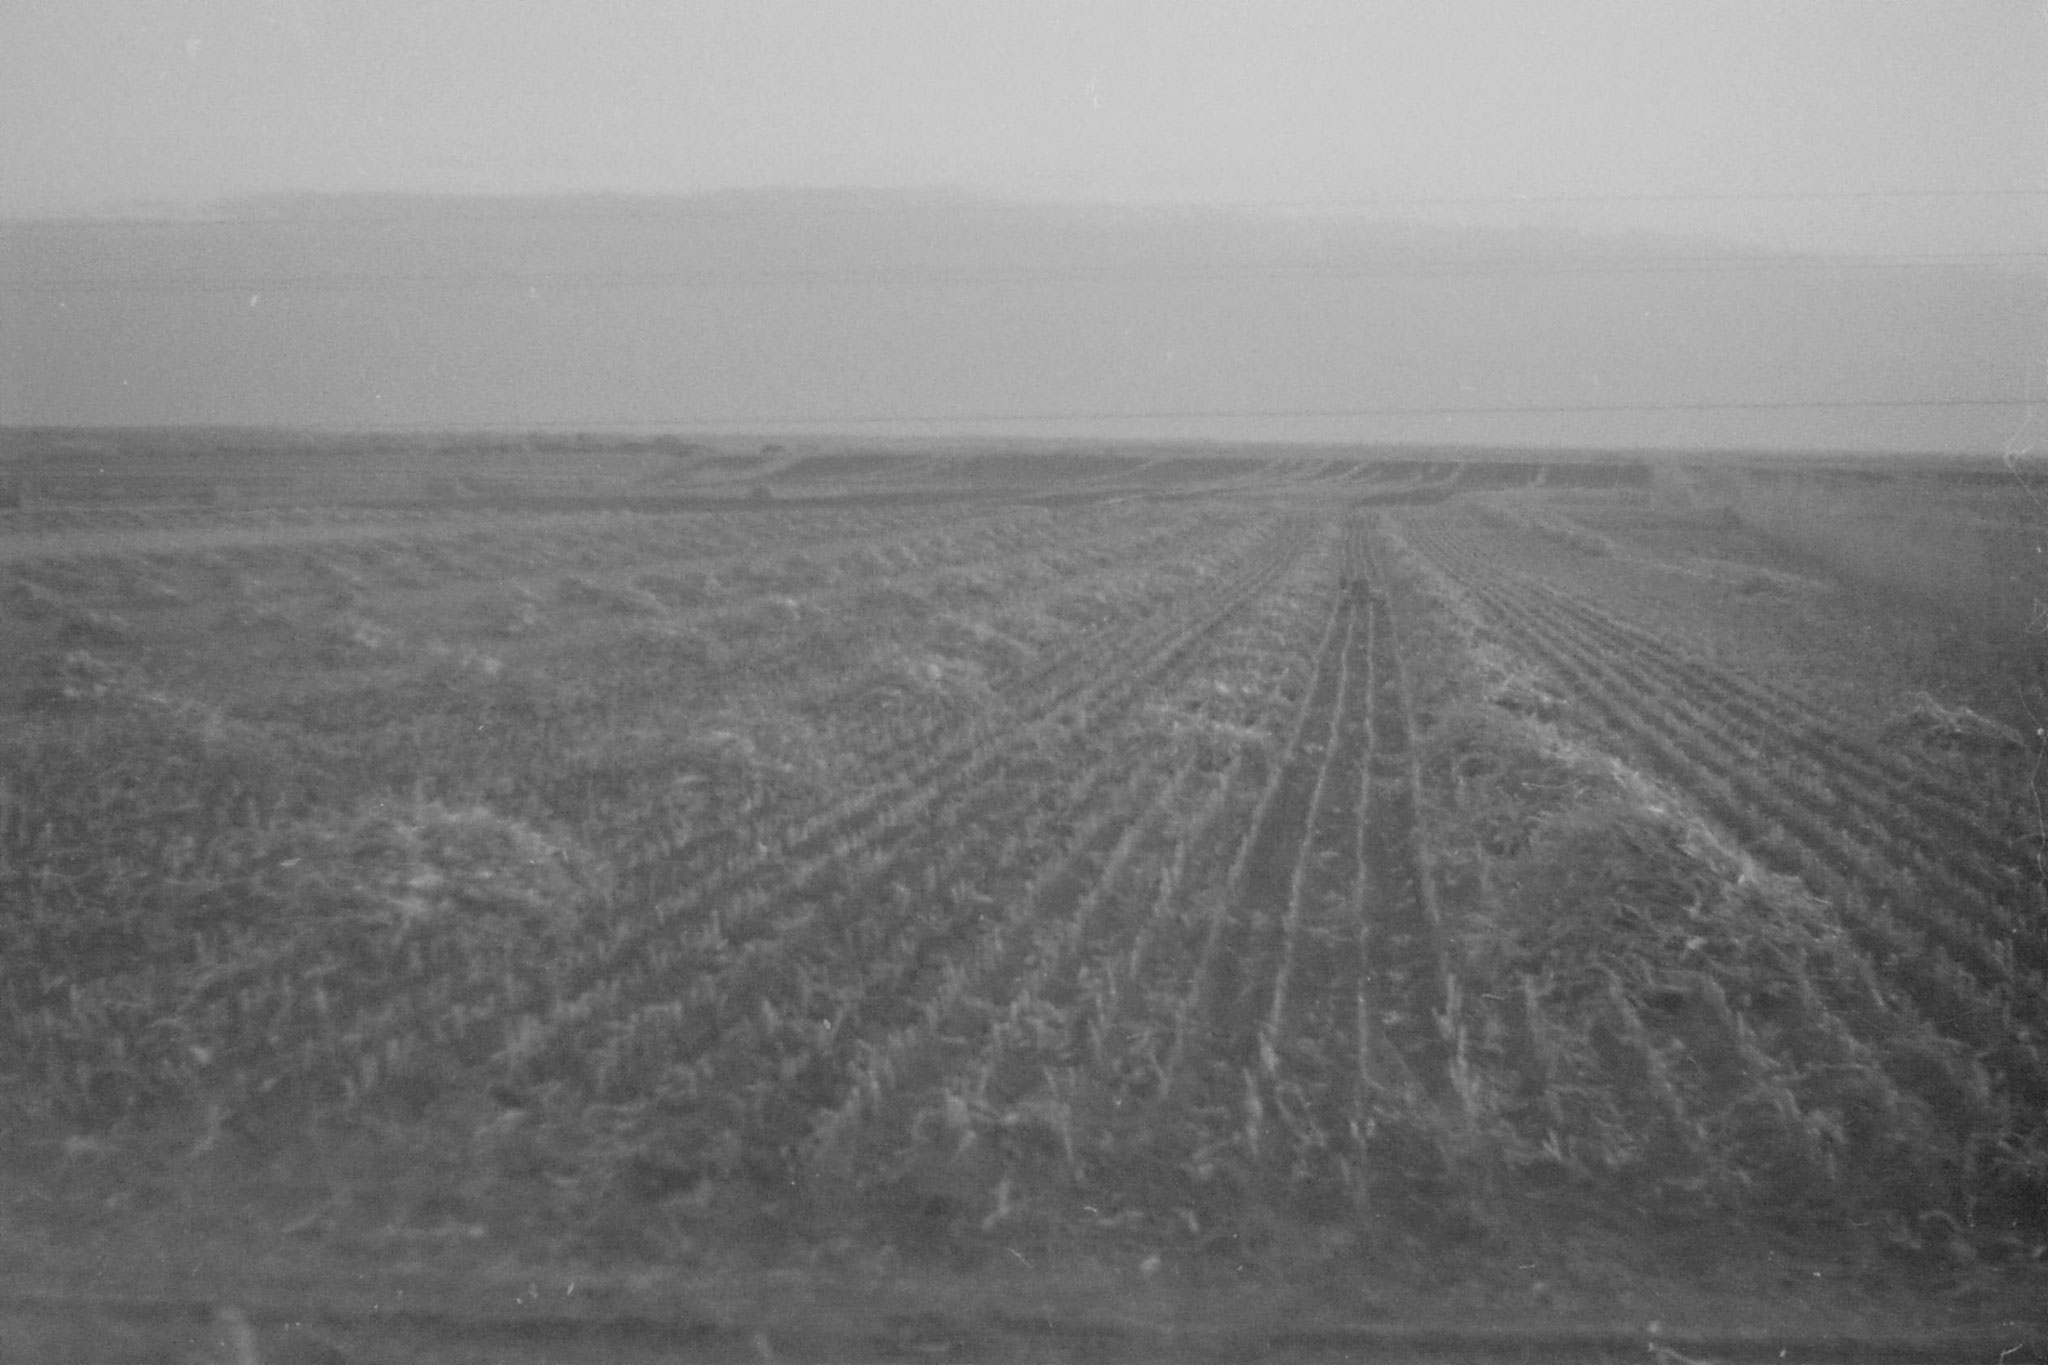 27/10/1988: 27: fields after Harbin